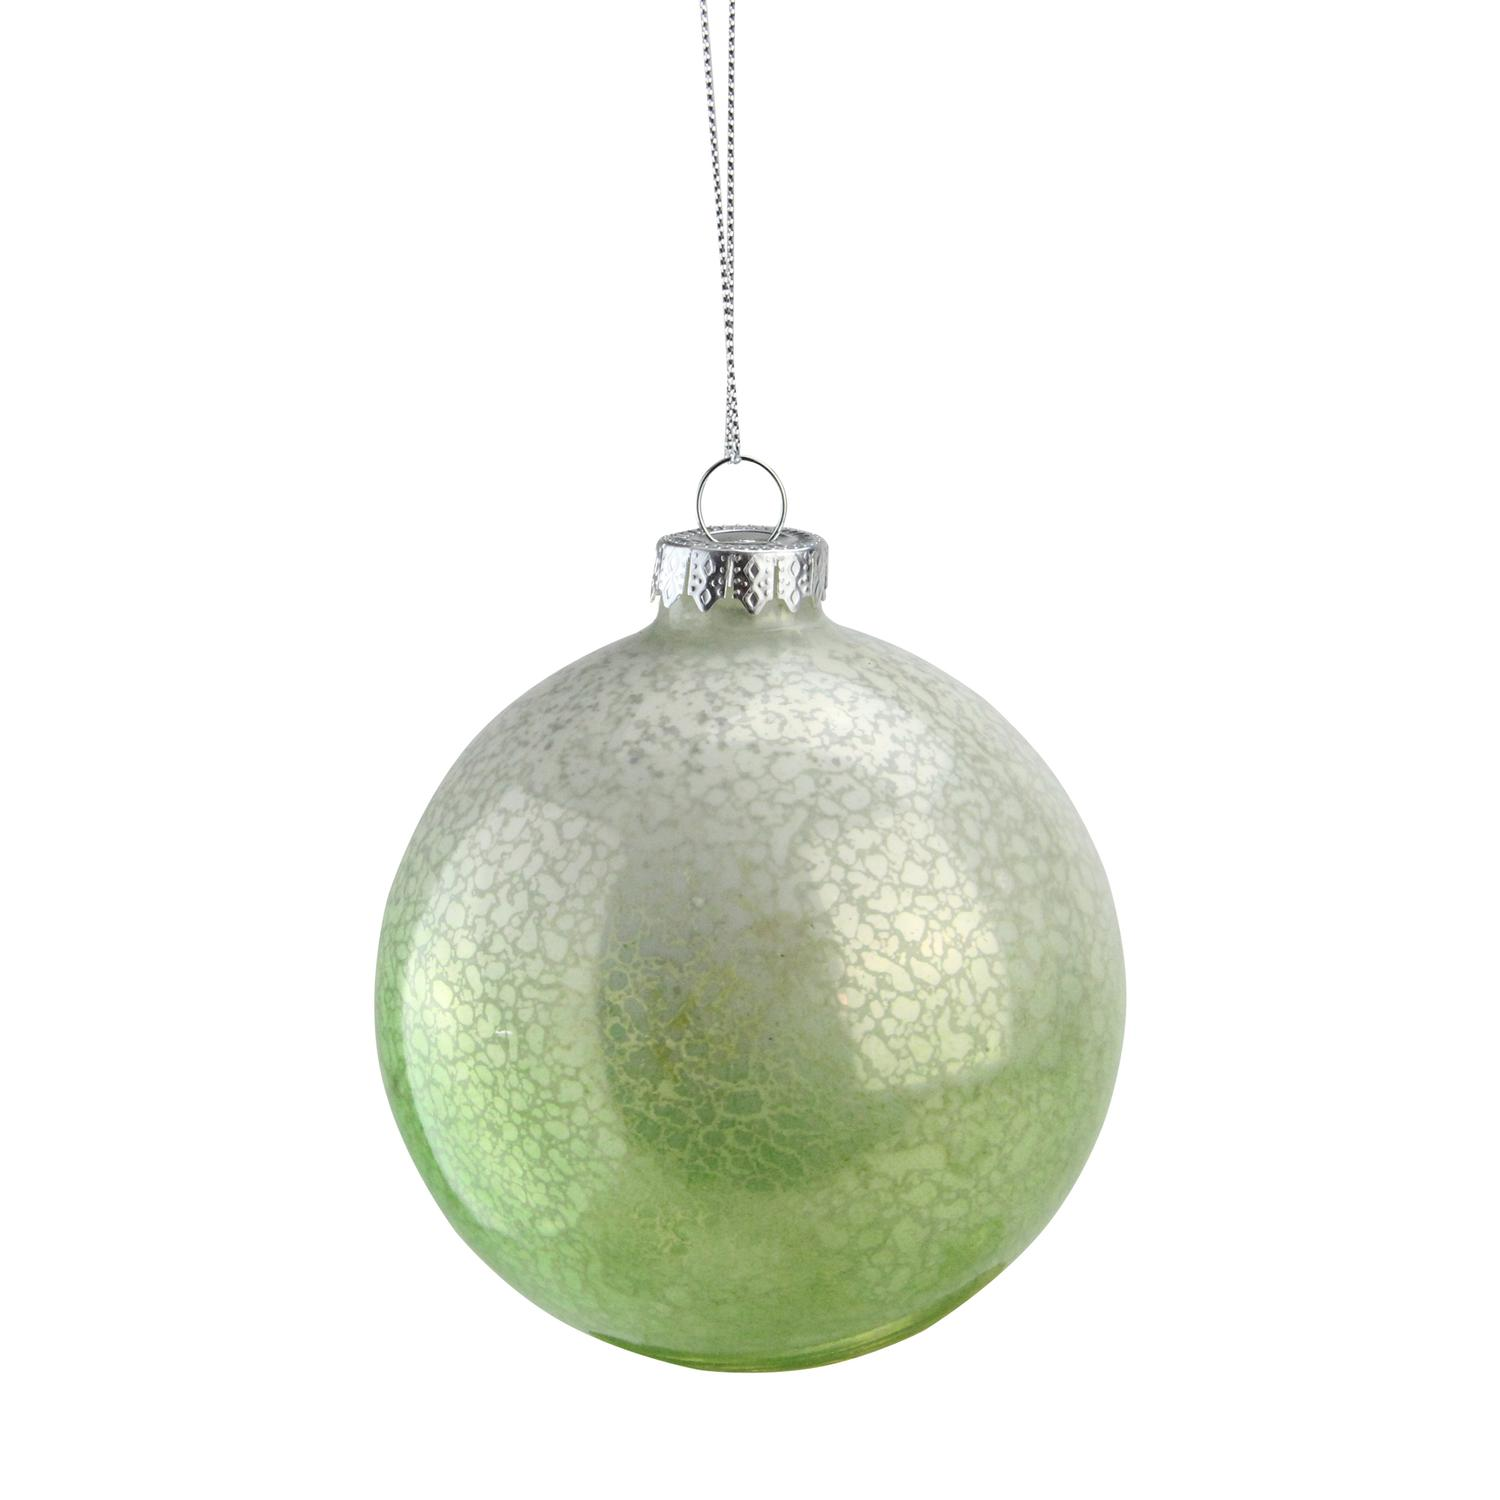 "4.5"" Green and White Spotted Glass Ball Decorative Christmas Ornament - image 2 of 2"